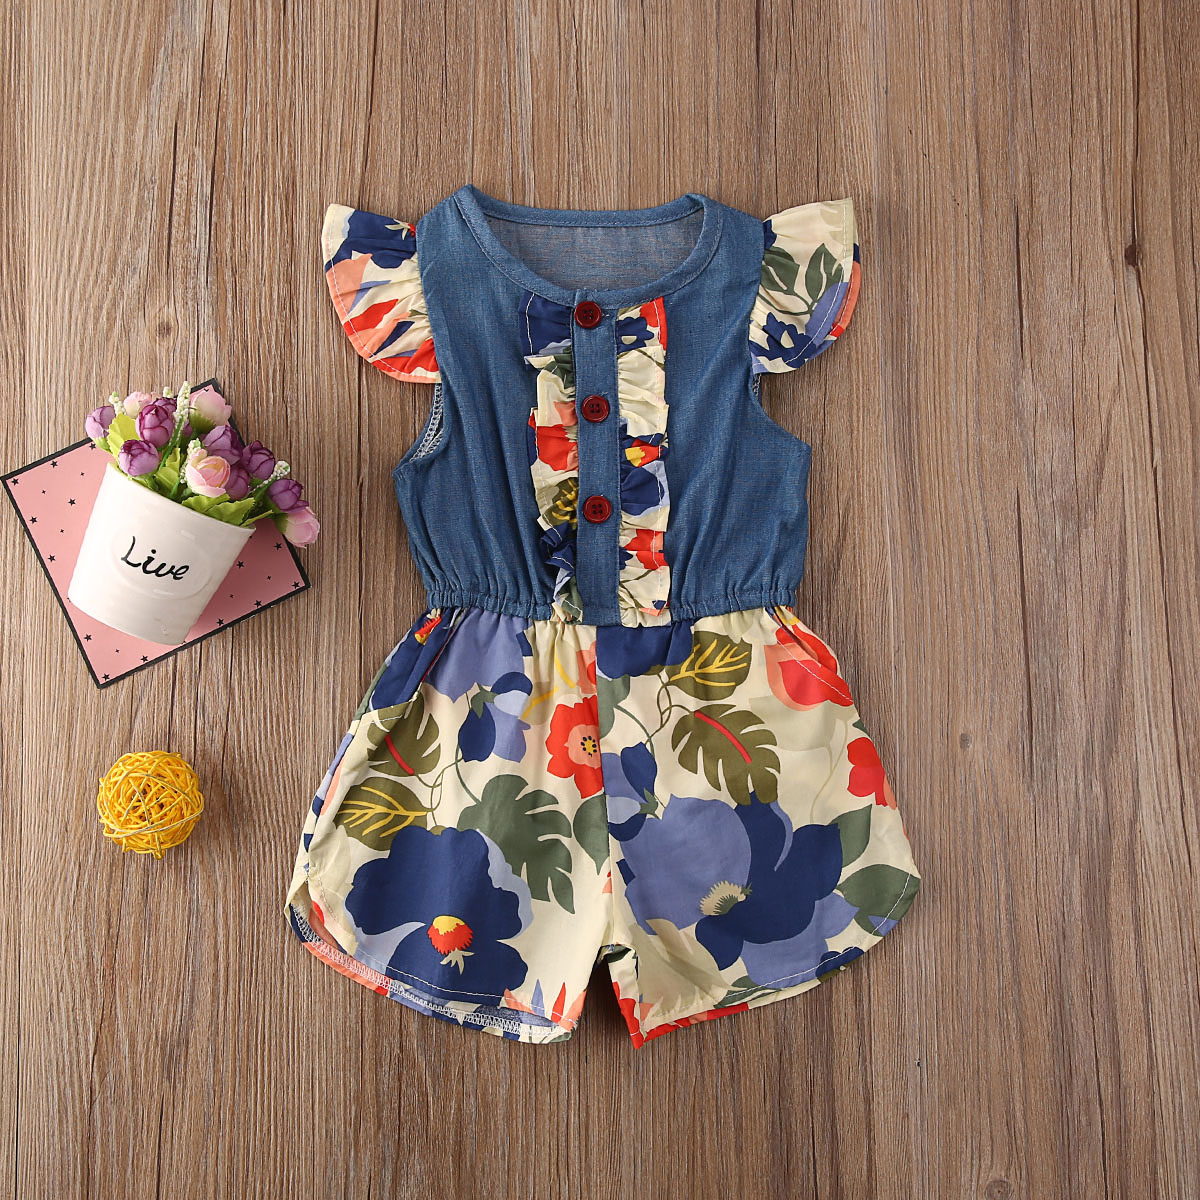 Pudcoco Newborn Baby Girl Clothes Flower Print Sleveless Denim Patchwork Romper Jumpsuit One-Piece Outfit Clothes